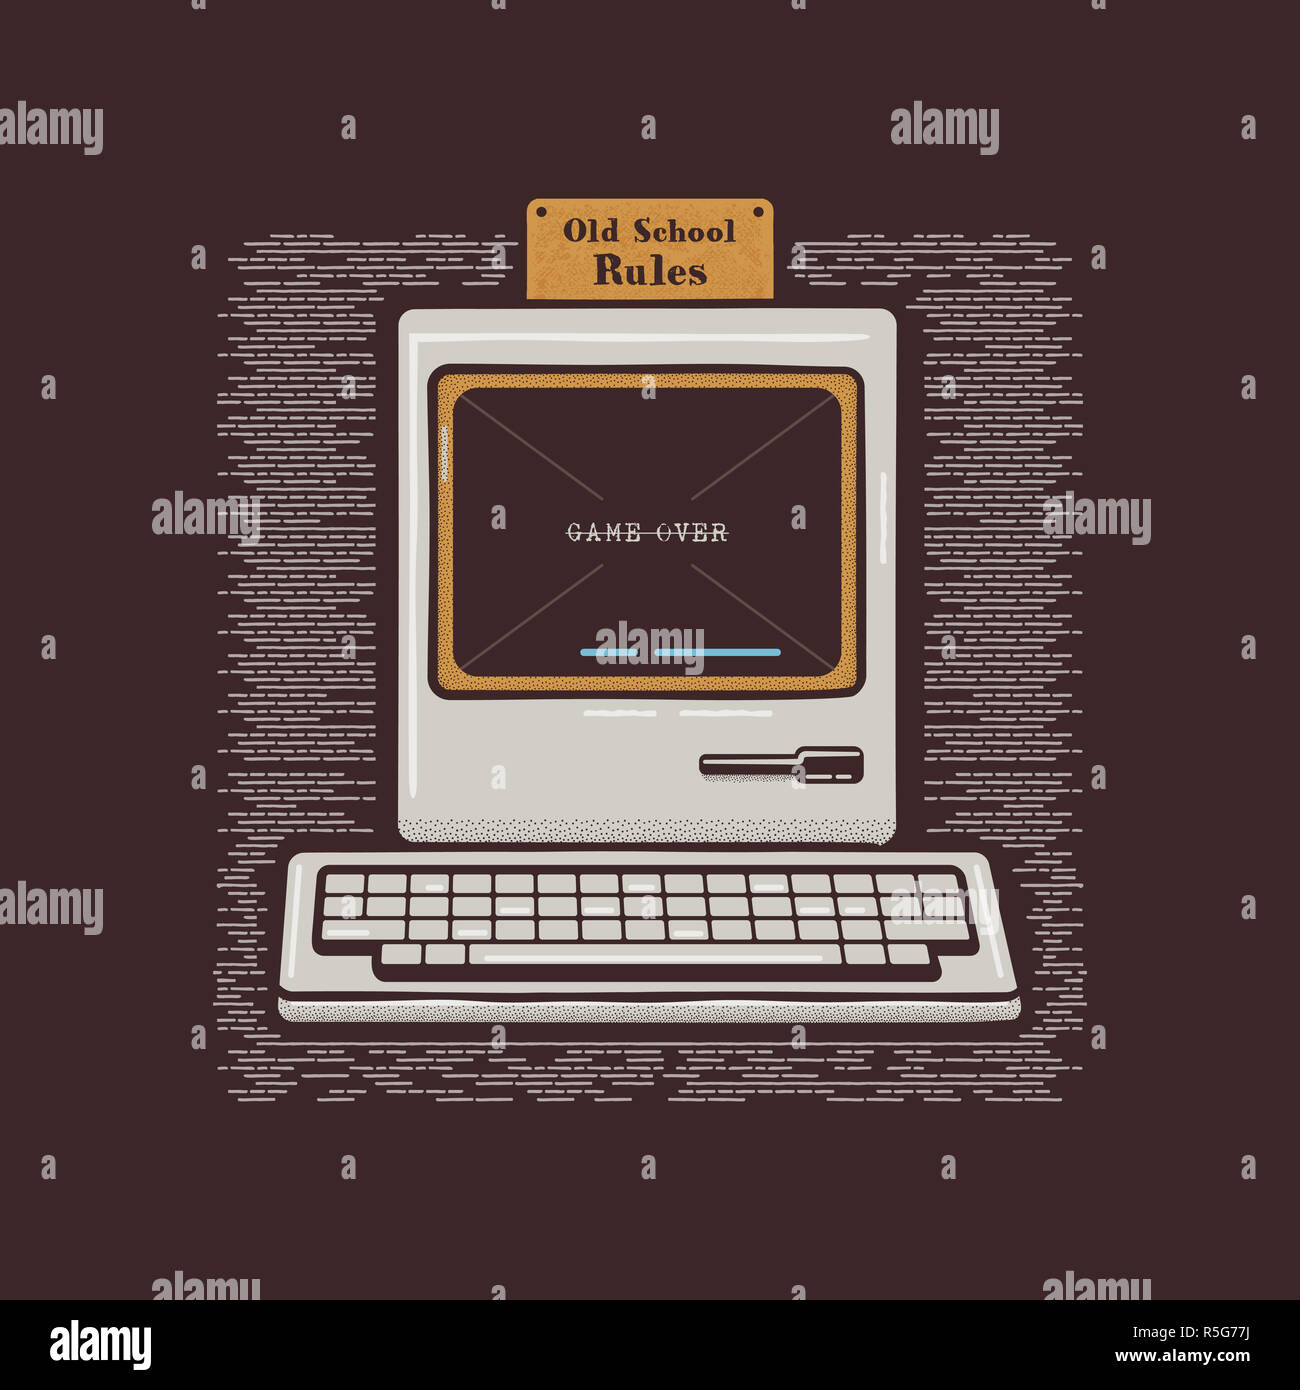 Old Personal Computer. Retro PC icon emblem with Old School Rules quote. Stock flat illustration isolated on dark background - Stock Image